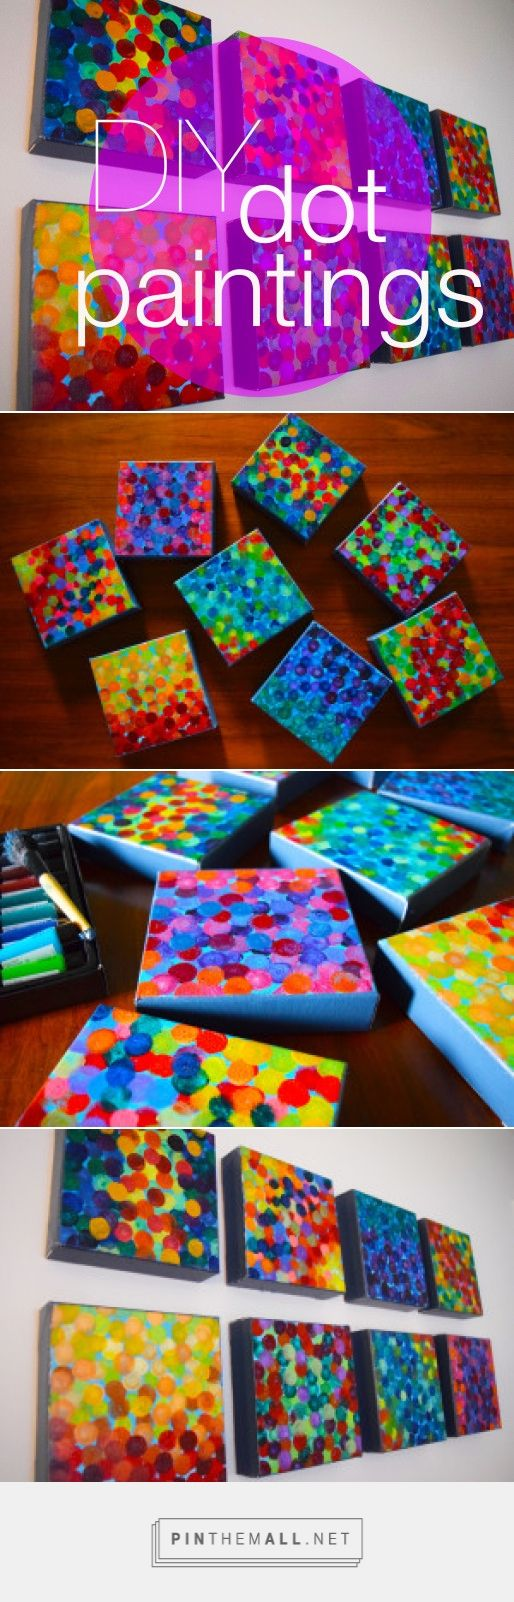 DIY Artwork: Dot Paintings on Canvas - Super cheap and easy to do. www.DreaminginColor.me #crafts #diy #paintings #canvas #color #dots #easycrafts #acrylic #decor #decoration #artwork